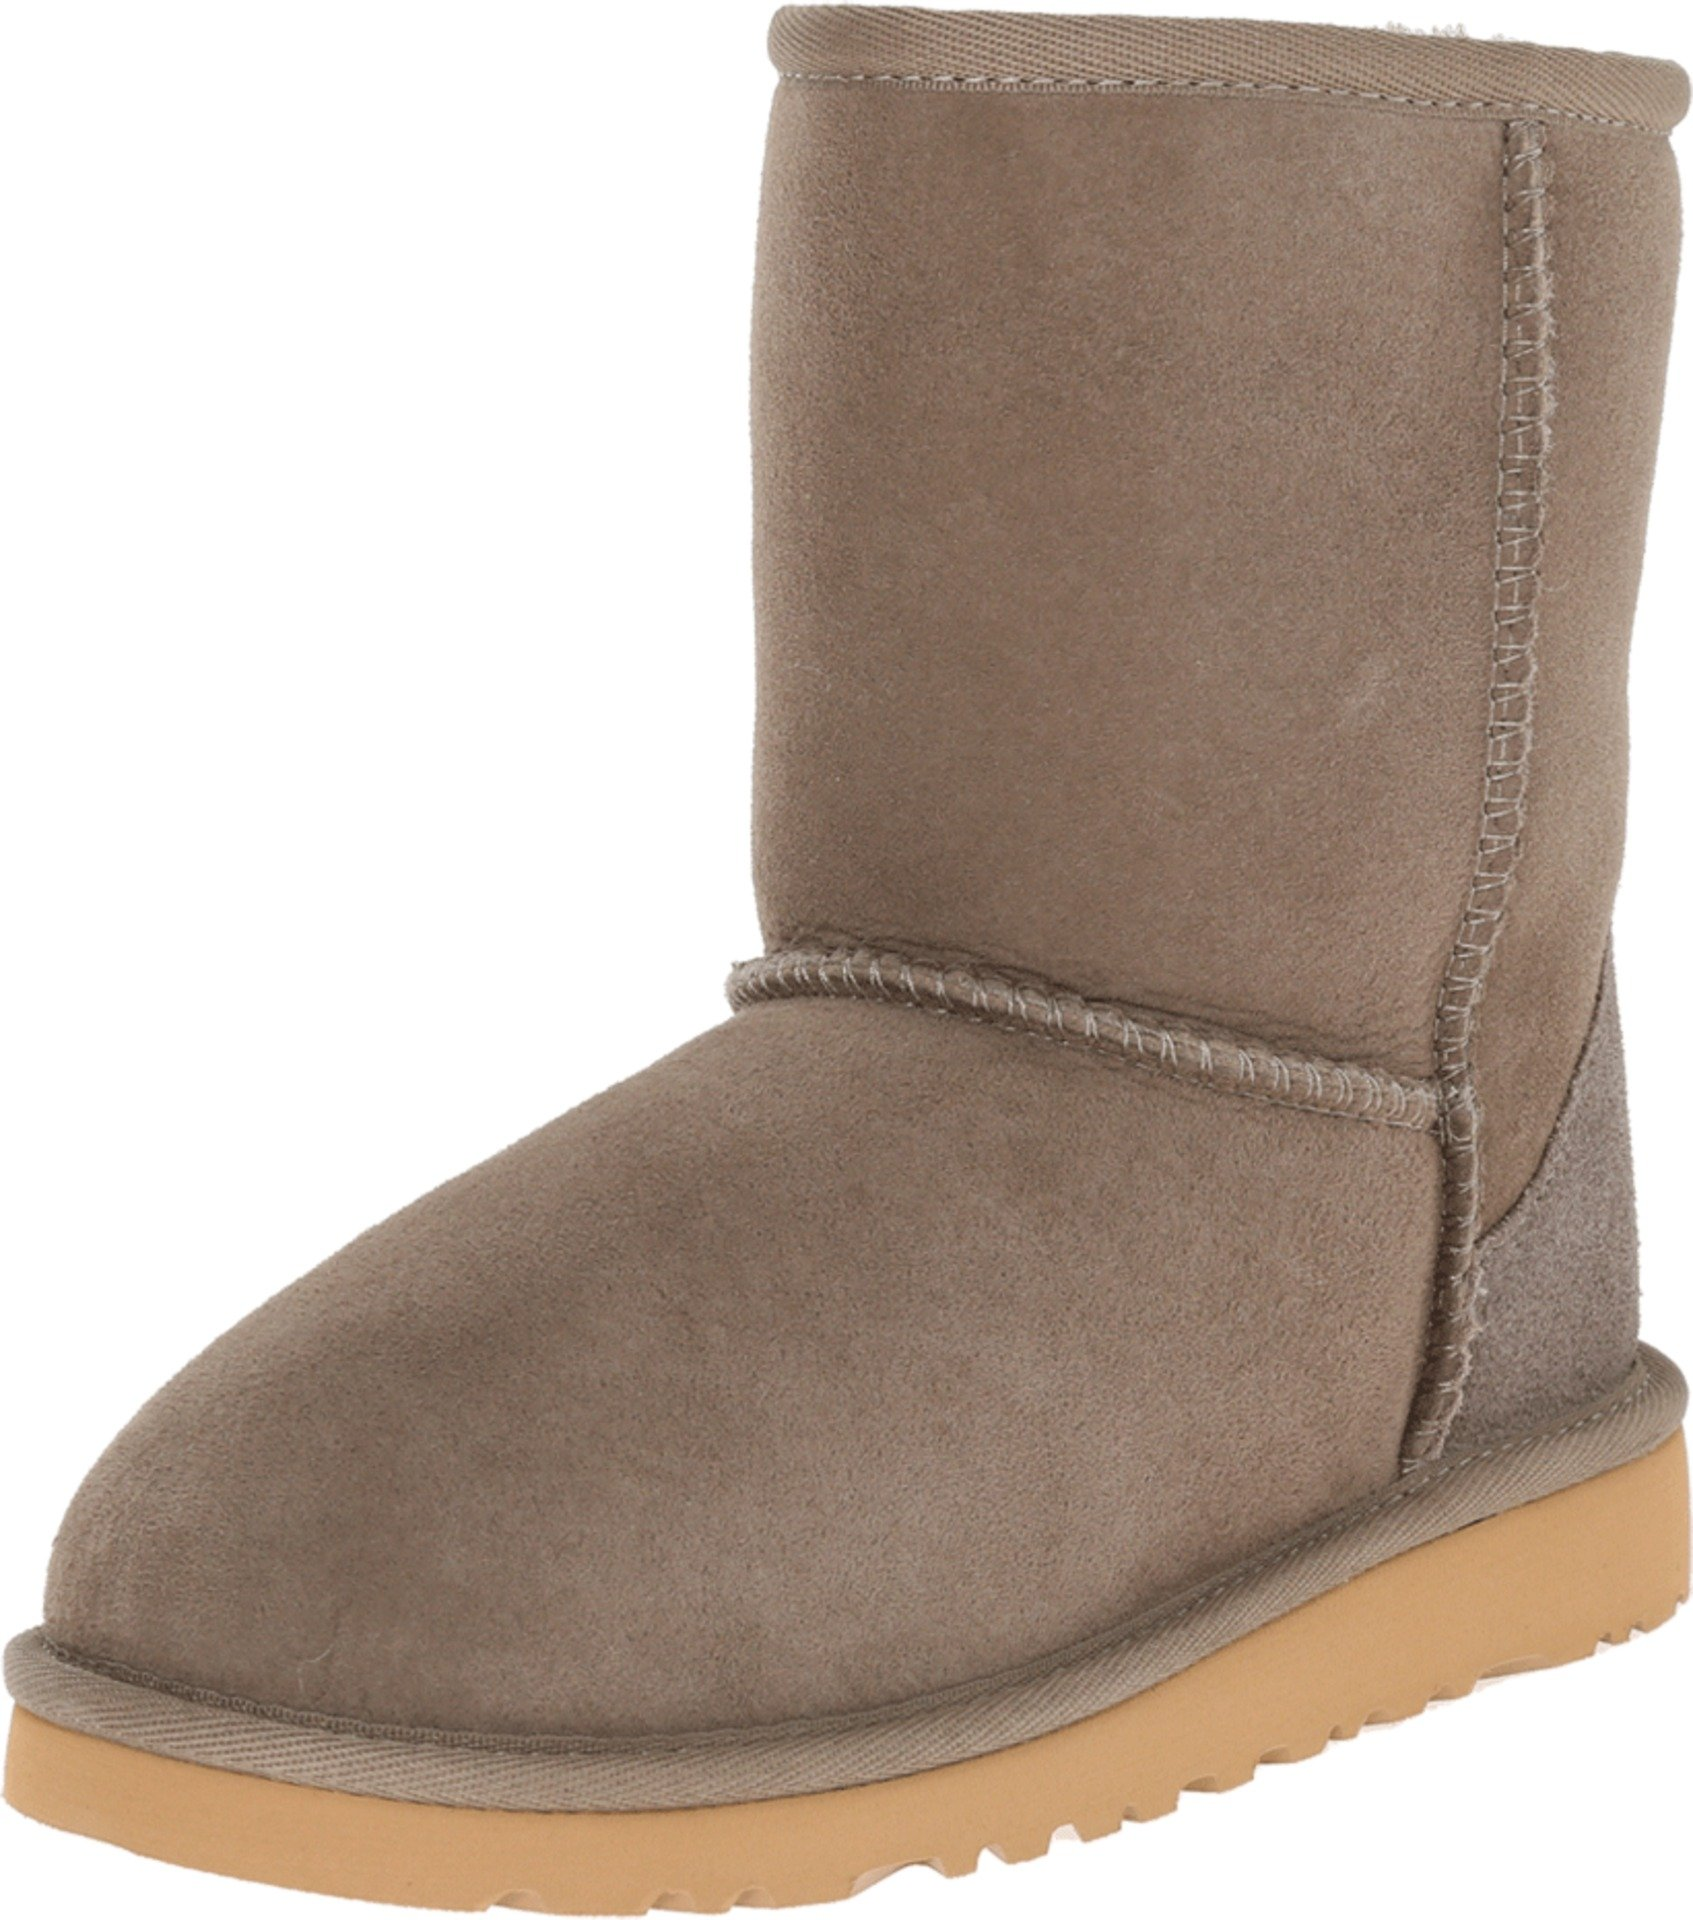 UGG Kids Unisex Classic (Little Kid/Big Kid) Primer Twinface 2 Little Kid M by UGG